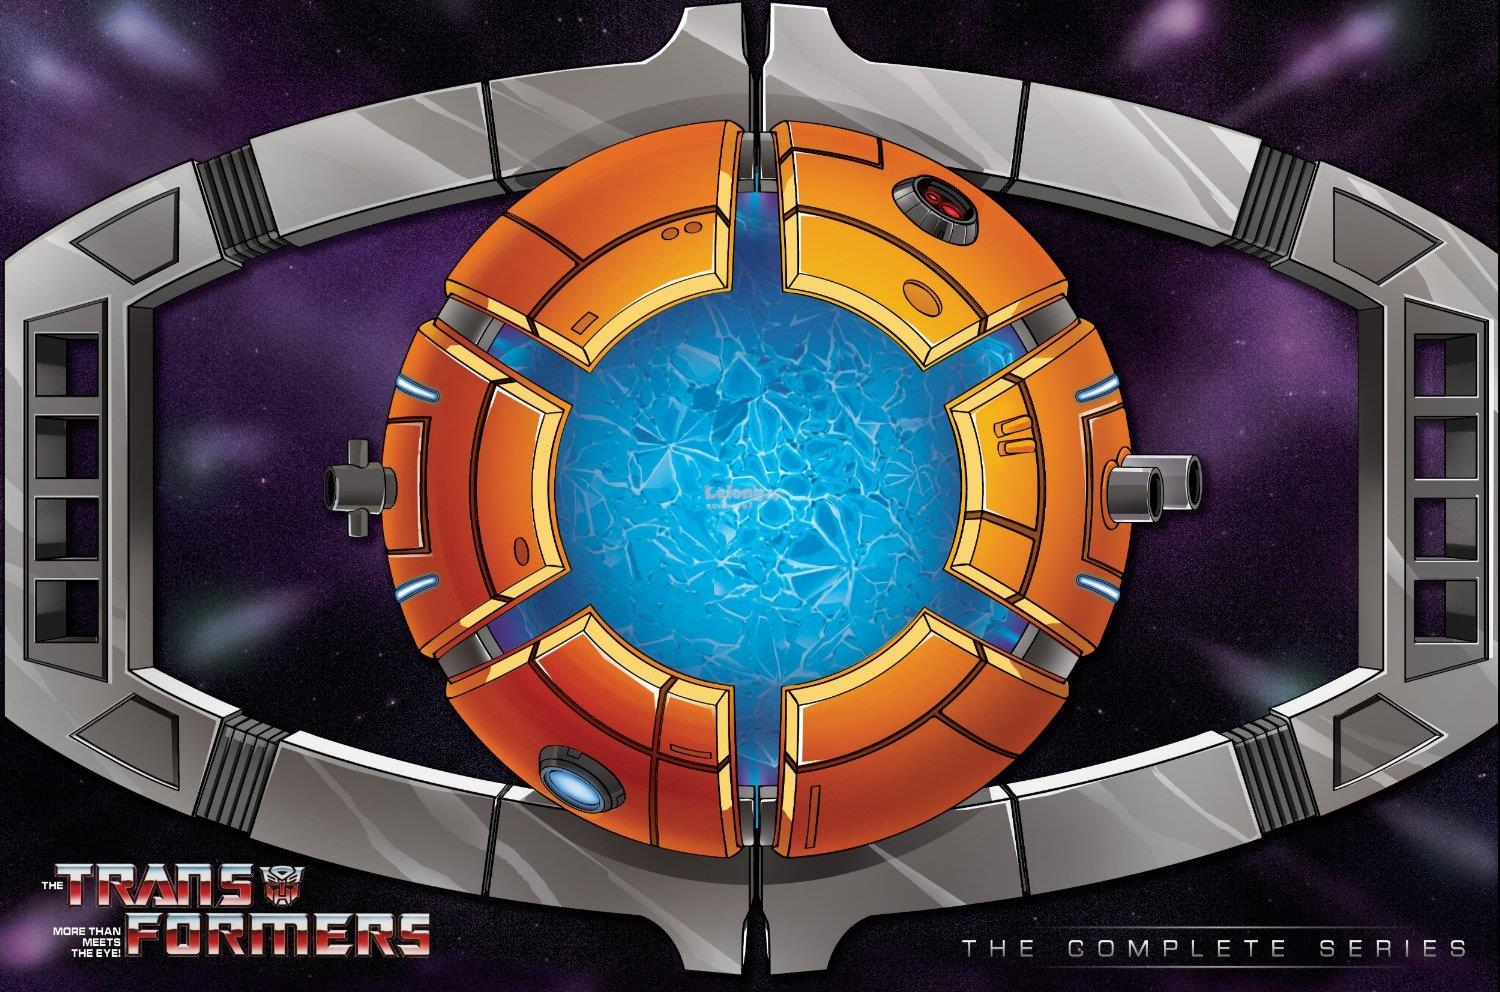 The Transformers - The Complete Series - New DVD Box Set